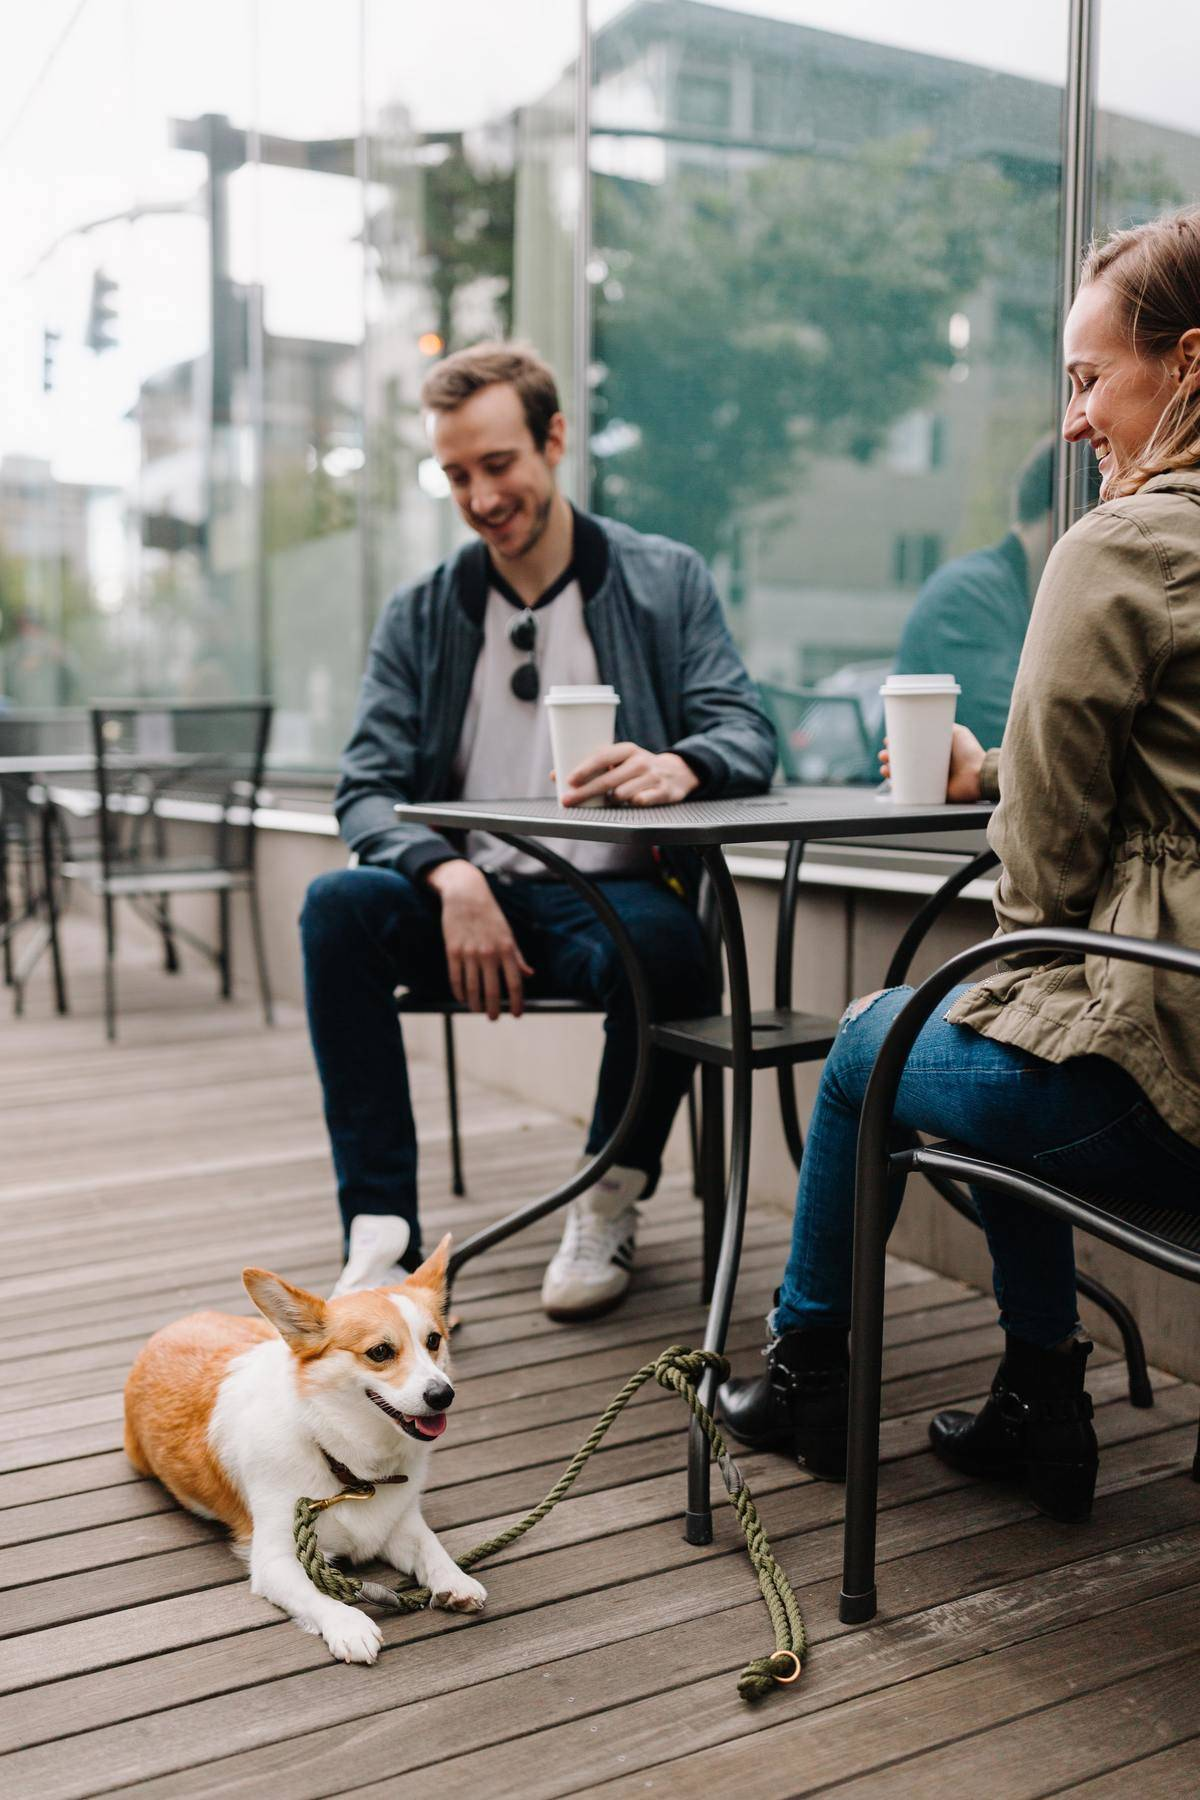 Couple sit on patio for date with corgi dog at their feet